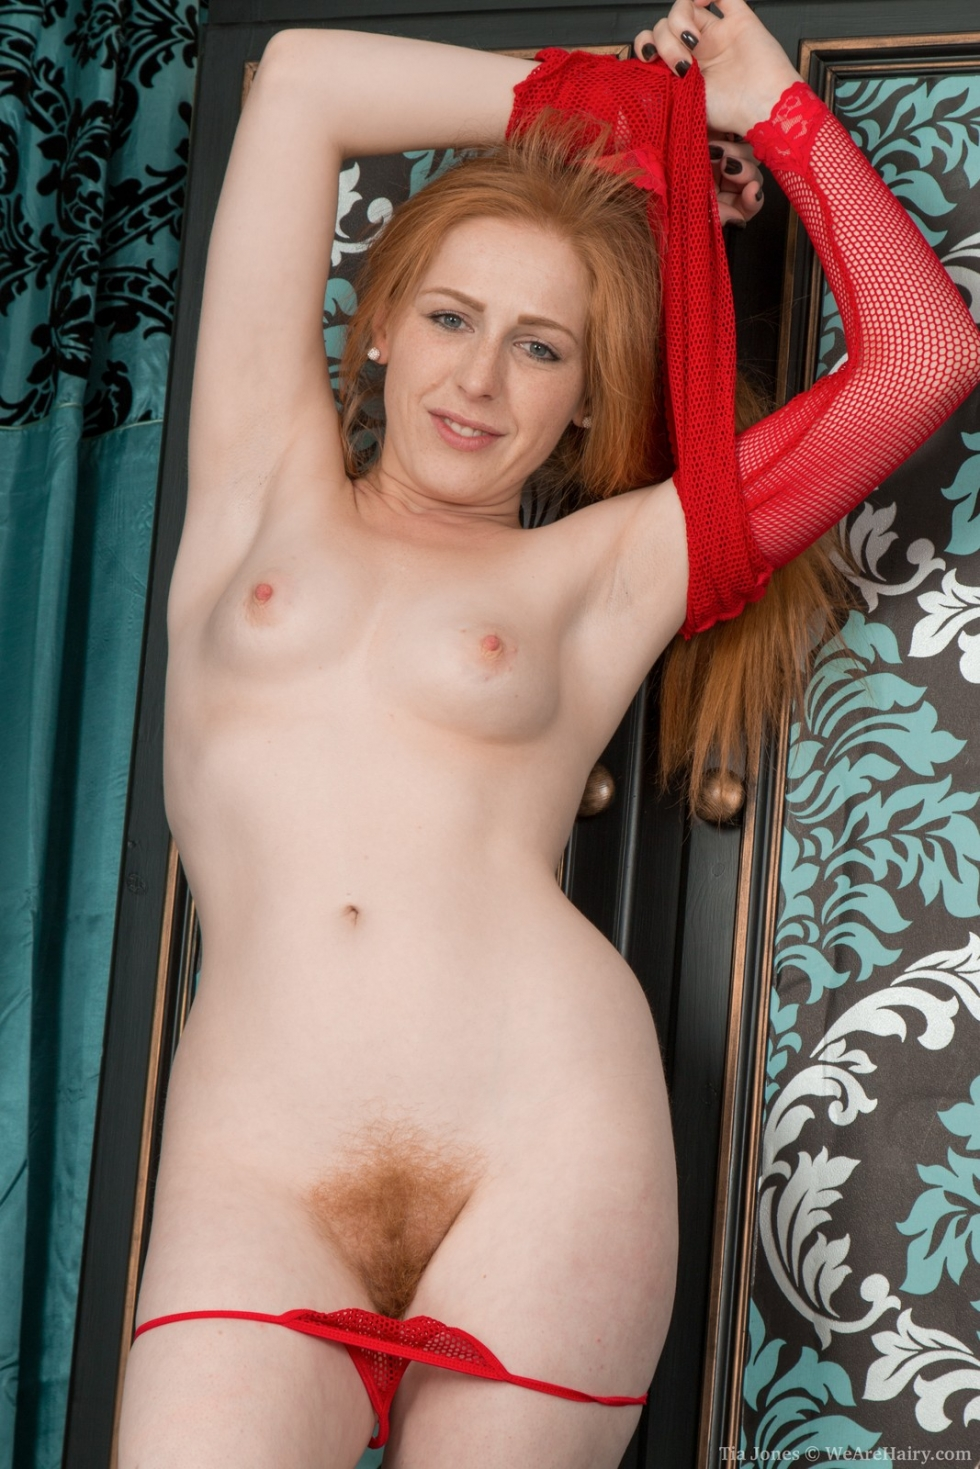 Not trust free hairy redhead mpeg simply